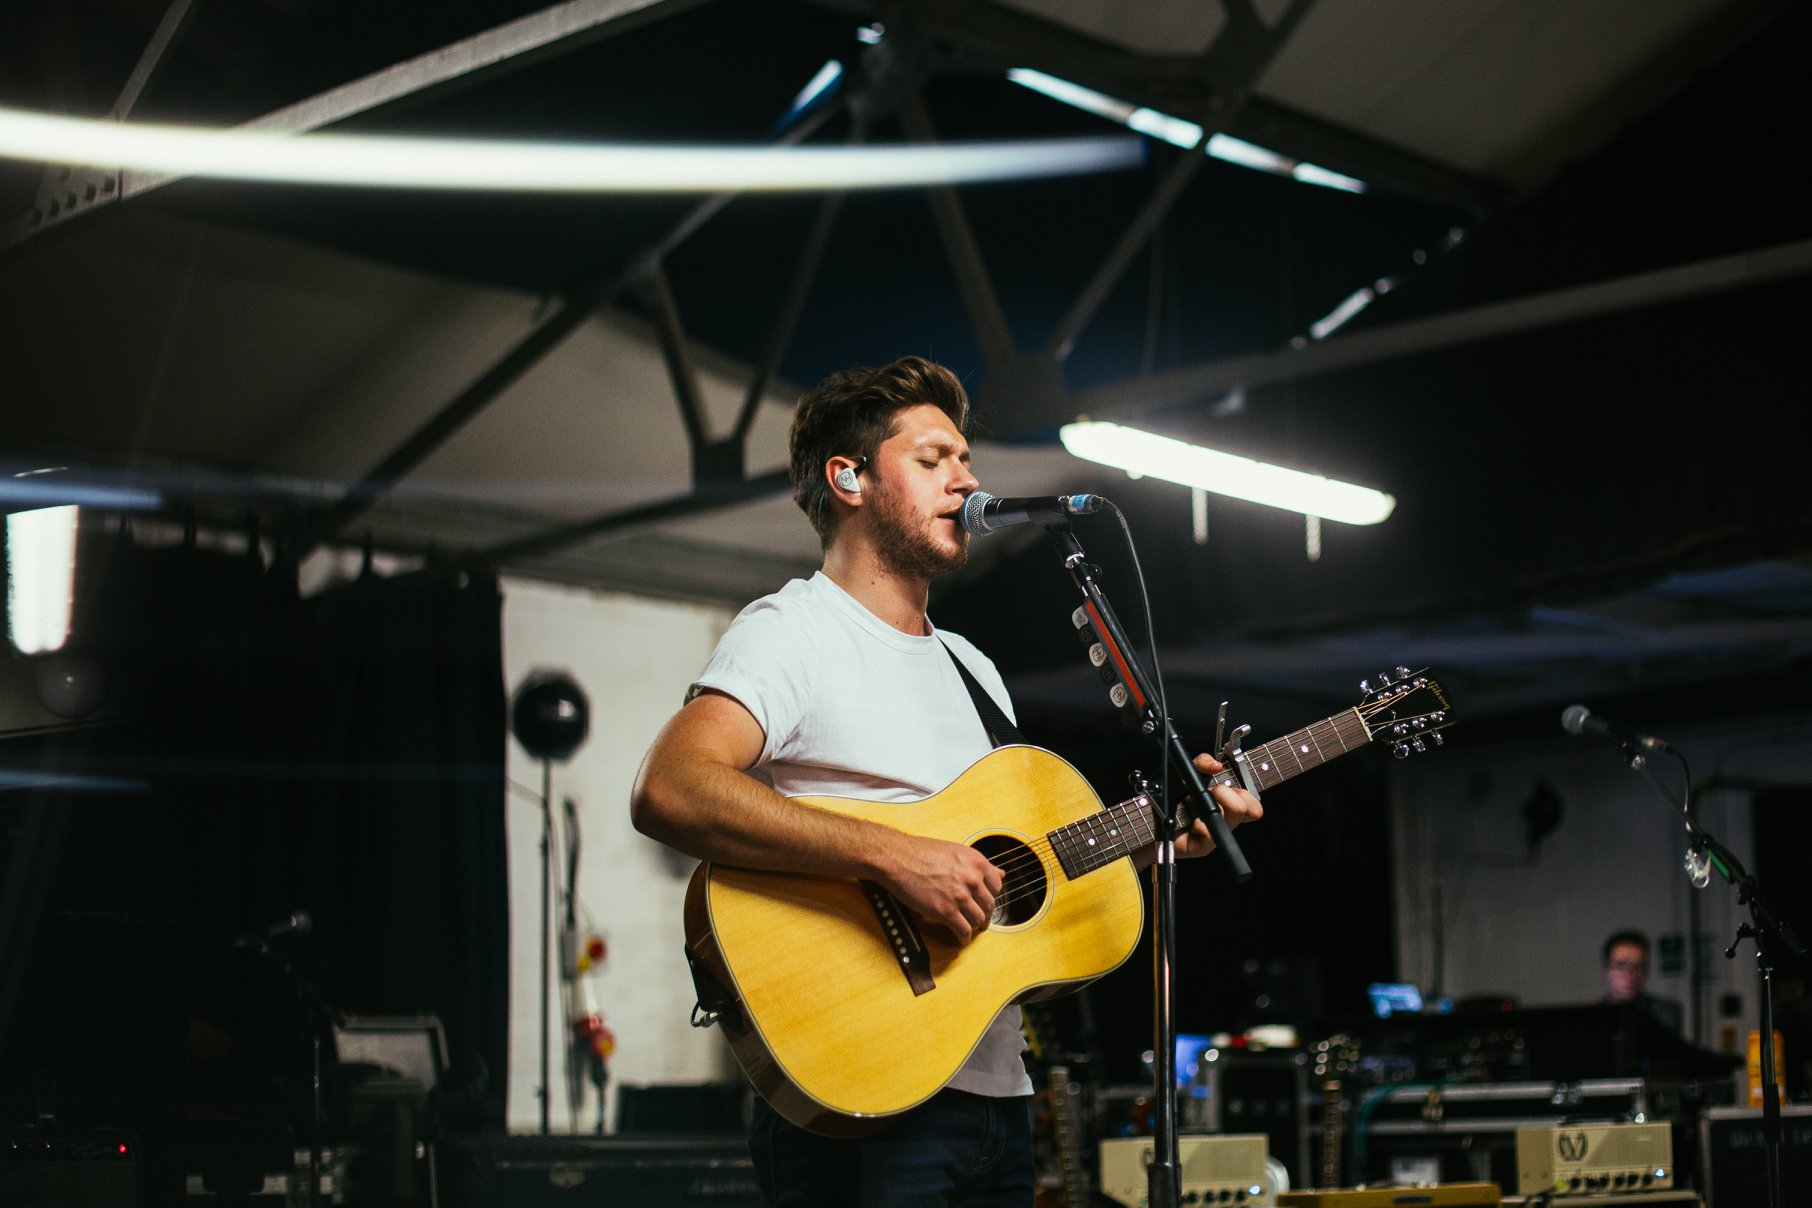 Image from Niall Horan Facebook